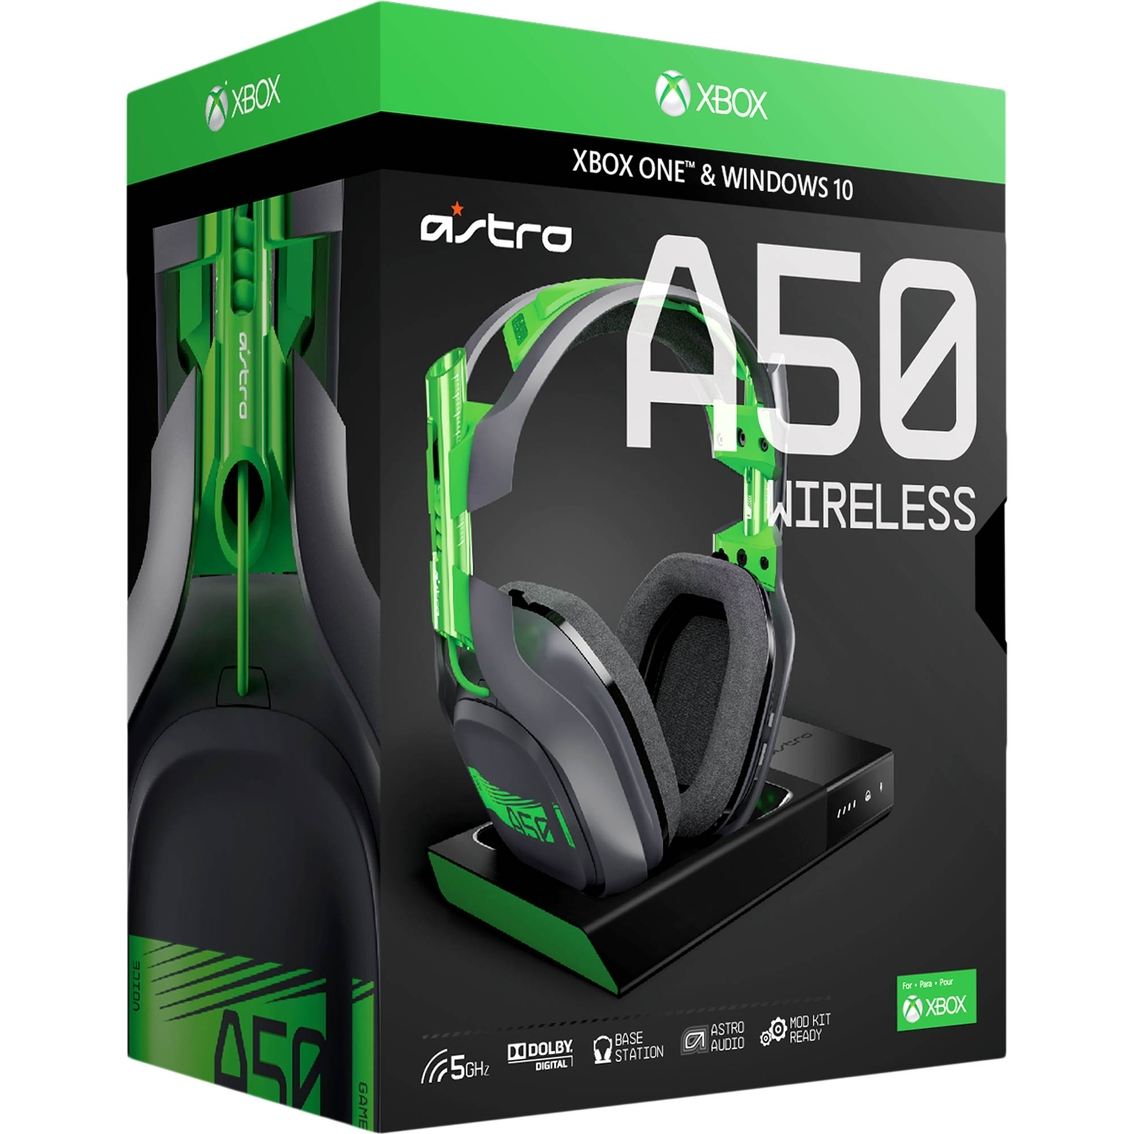 f4eac79aee6 Astro A50 Wireless Gaming Headset For Xbox One | Xbox One ...